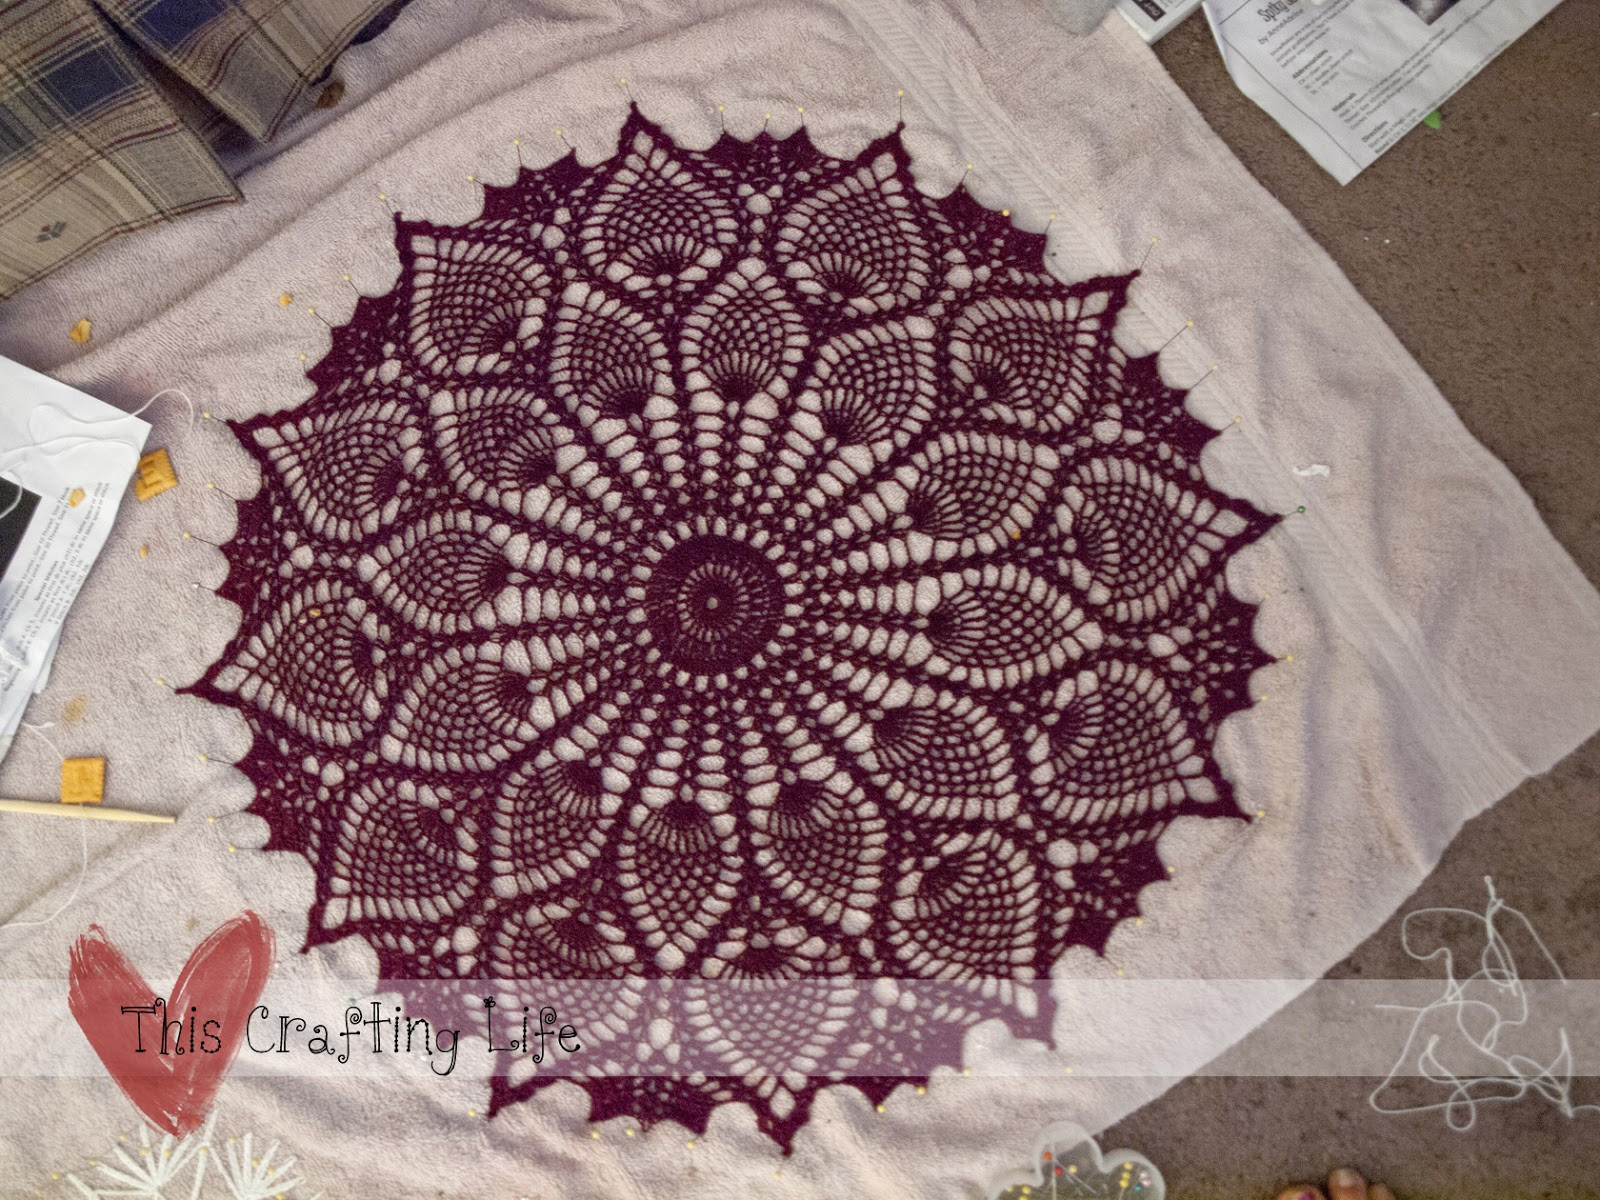 Free Crochet Table topper Patterns Lovely This Crafting Life Table topper Doily Crochet Pattern Of Innovative 45 Ideas Free Crochet Table topper Patterns